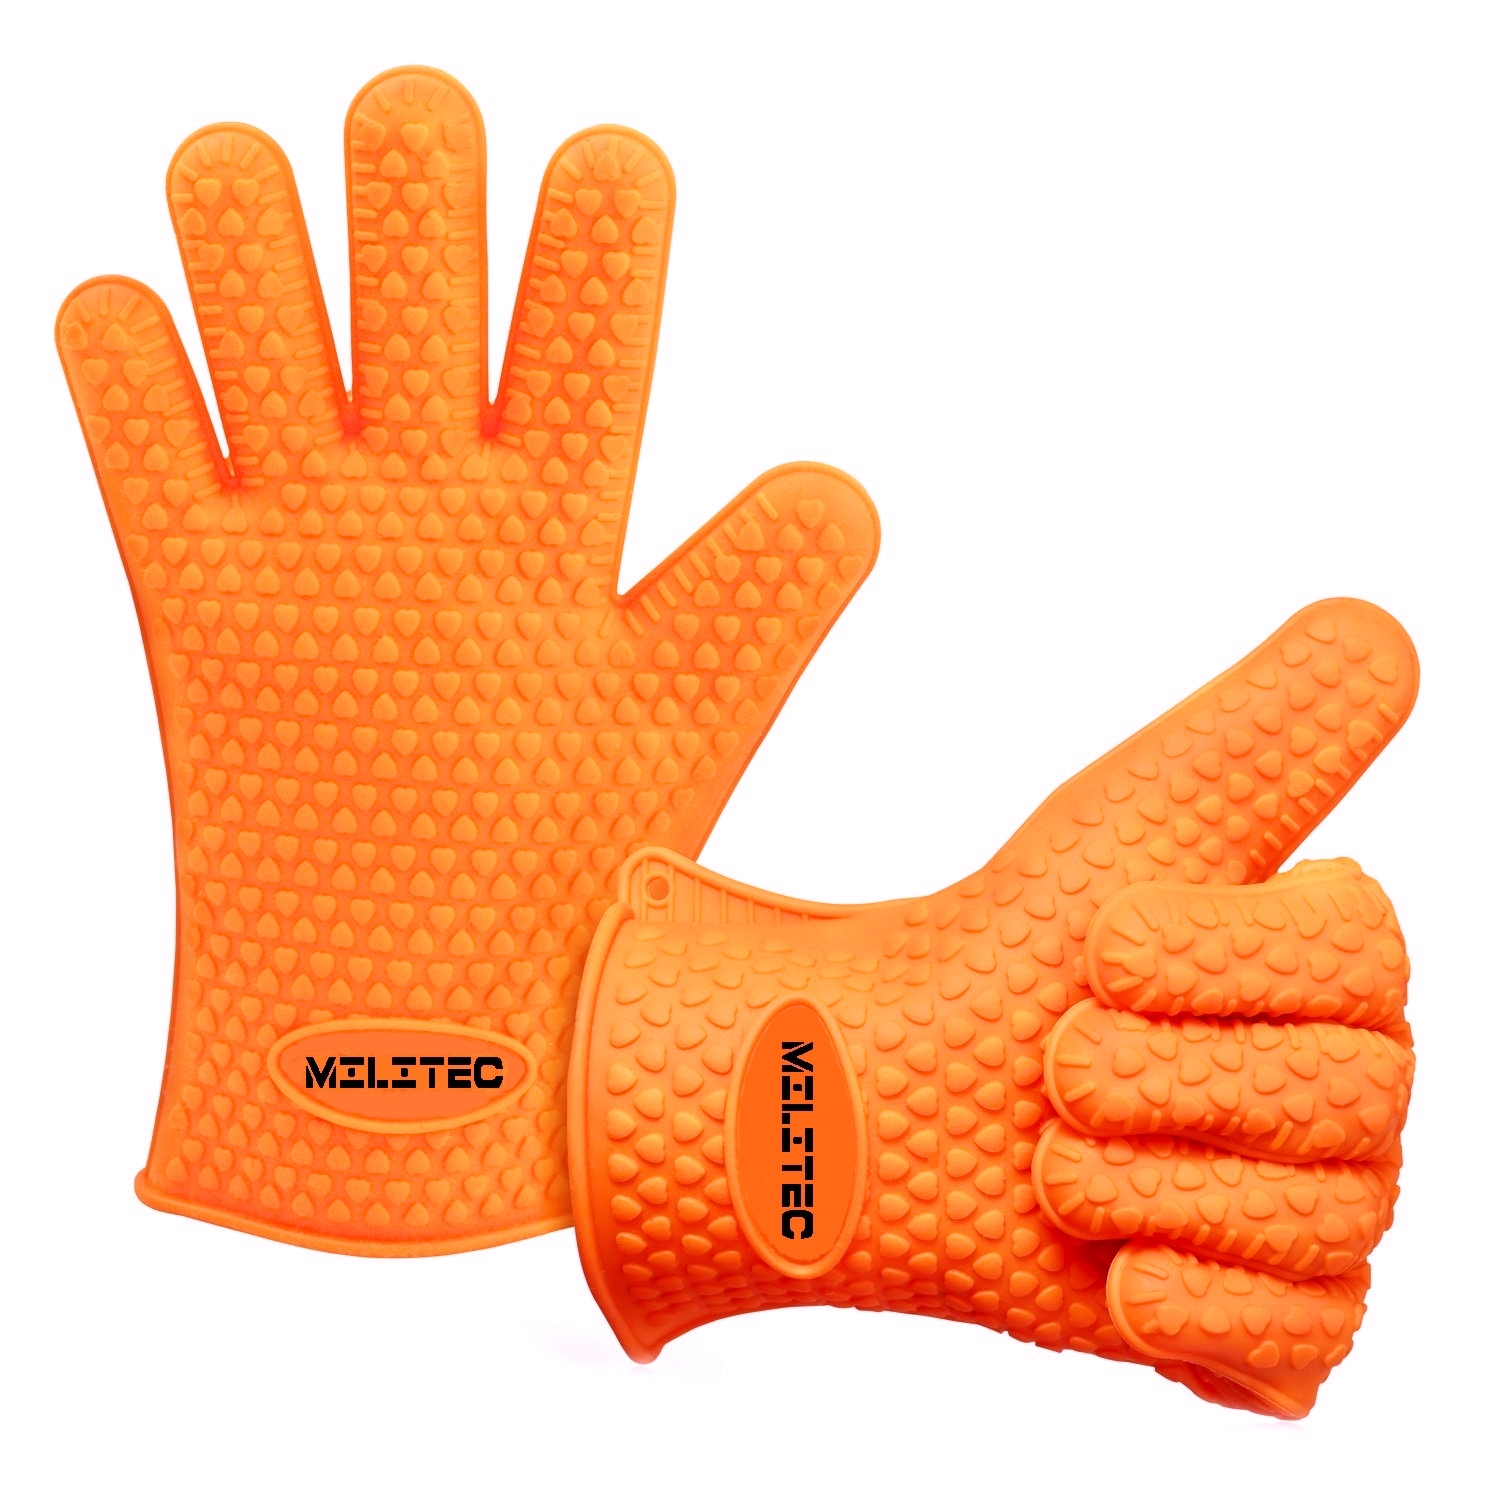 Militec Silicone BBQ Gloves Oven Mitts Heavy Duty